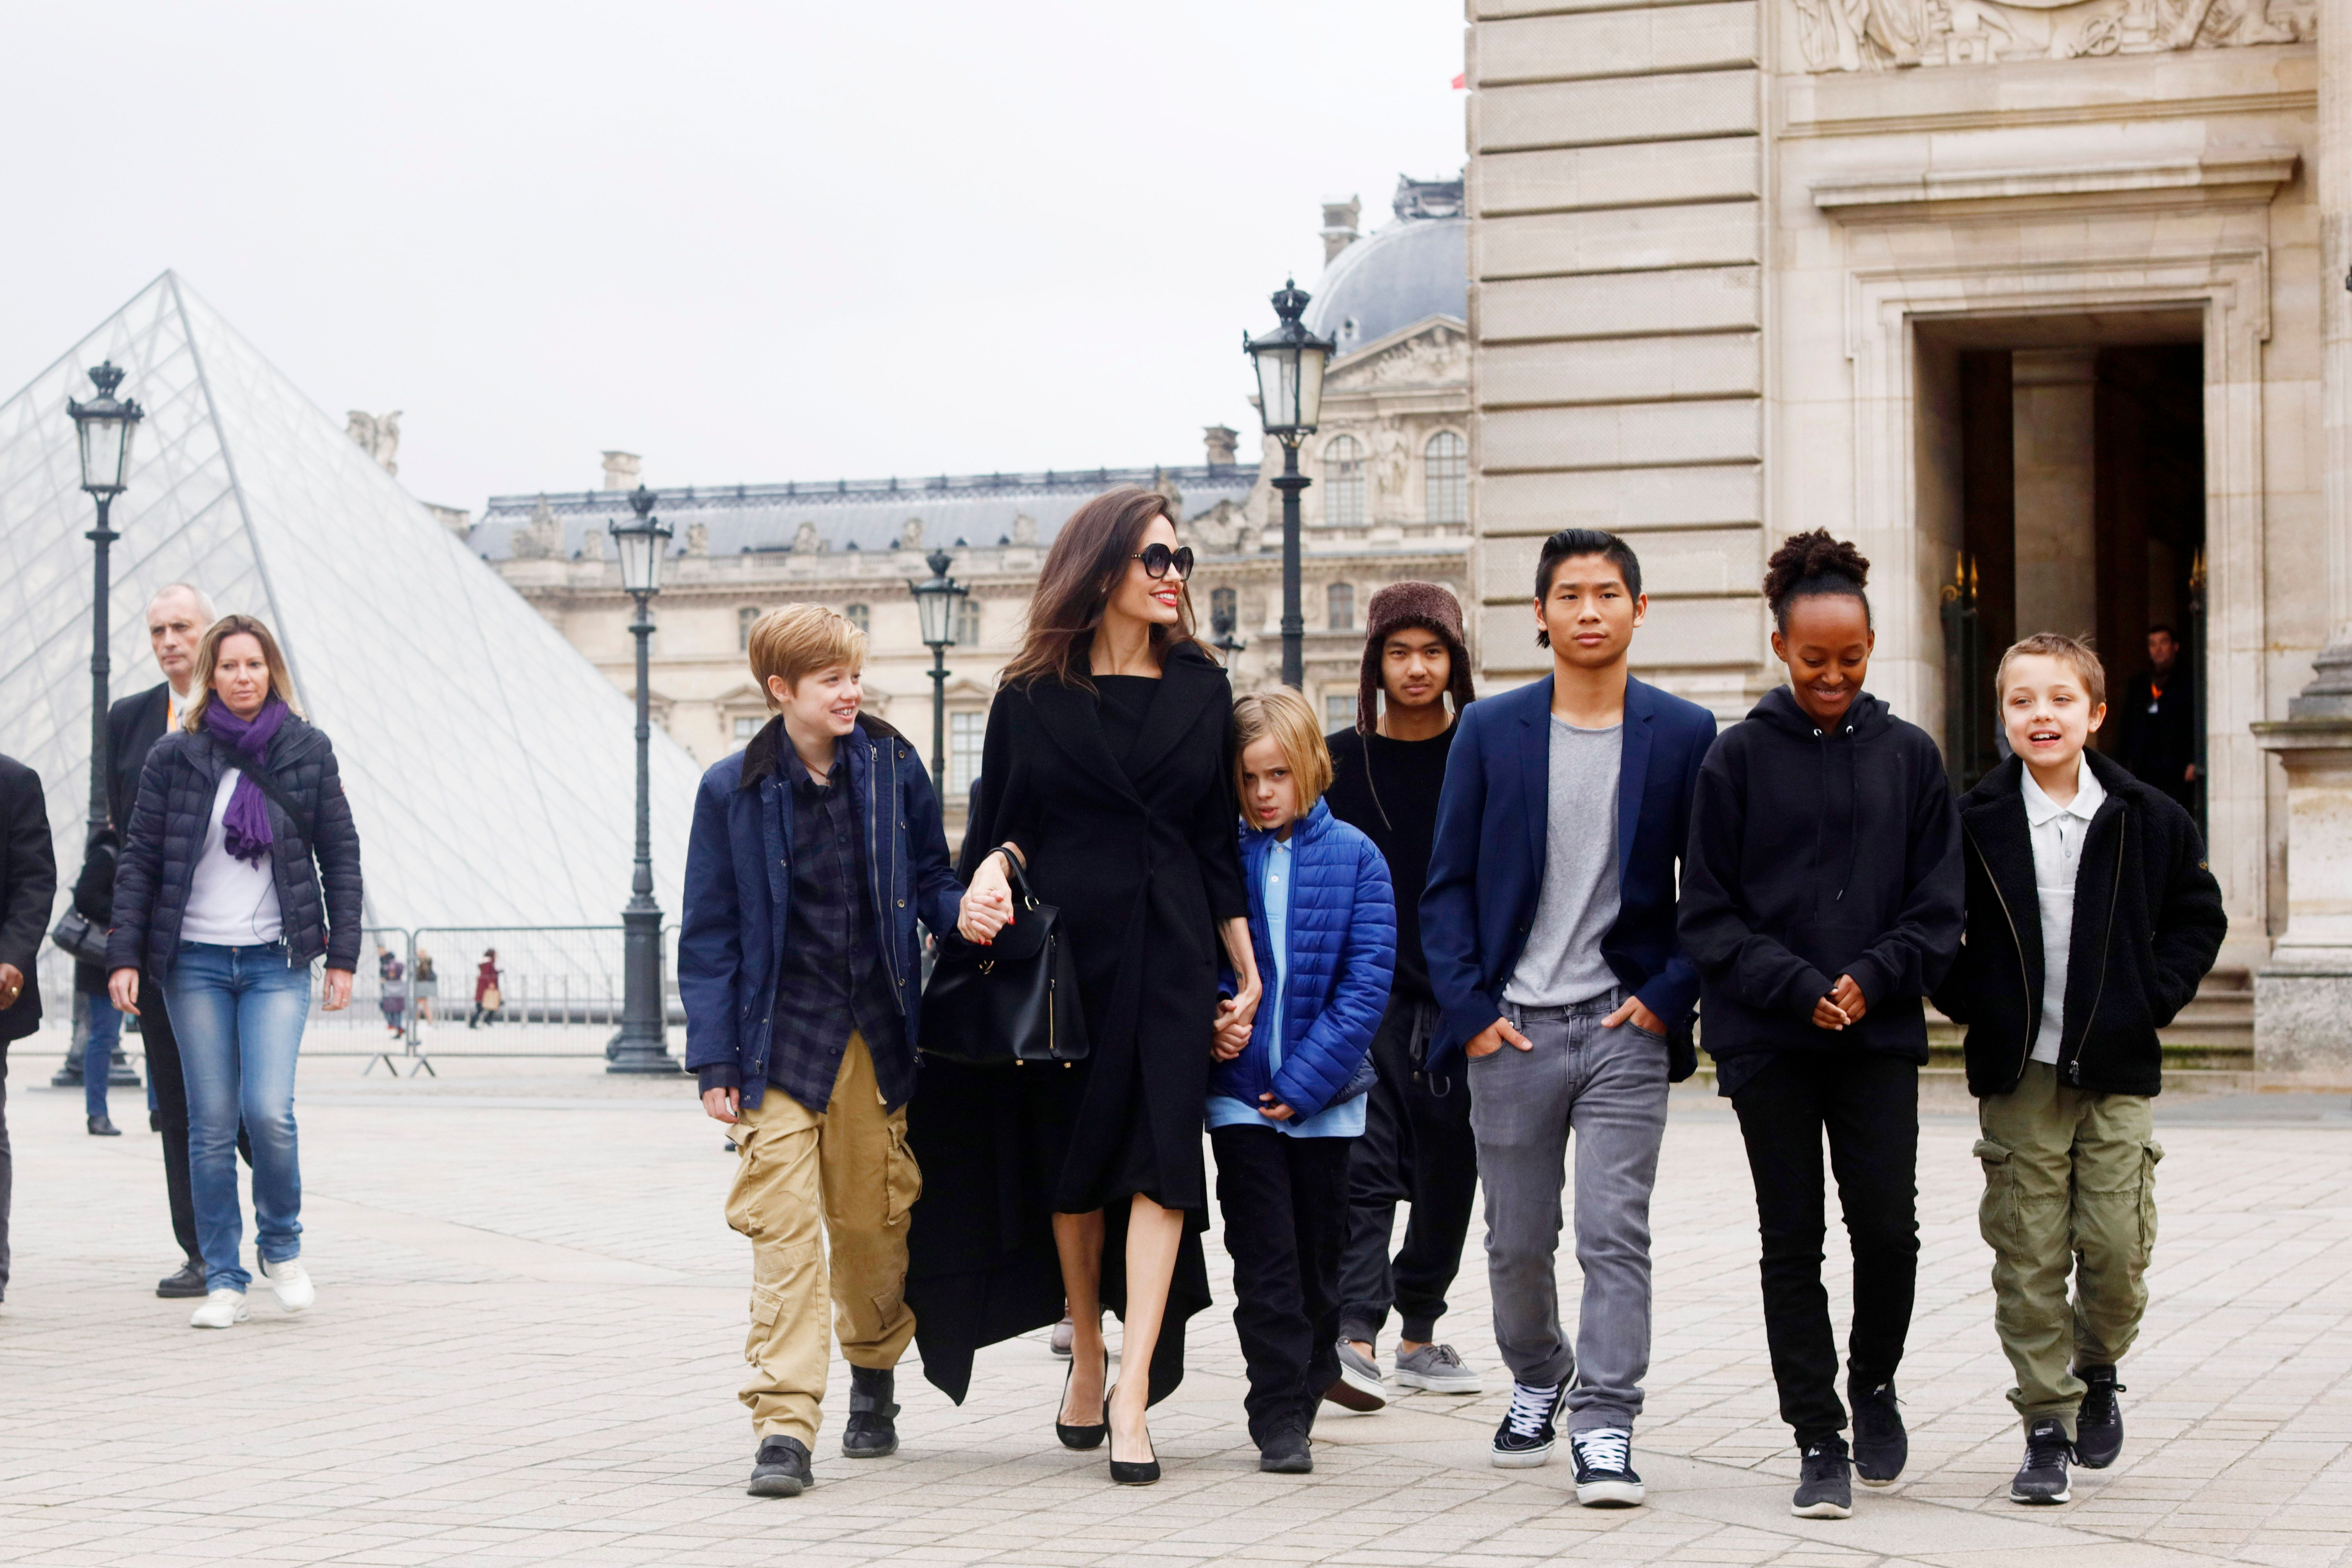 Angelina Jolie with her children Shiloh Pitt Jolie, Maddox Pitt Jolie, Vivienne Marcheline Pitt Jolie, Pax Thien Pitt Jolie, Zahara Marley Pitt Jolie, Knox Leon Pitt Jolie, visit the Louvre in Paris, France (Photo by Mehdi Taamallah/NurPhoto via Getty Images)